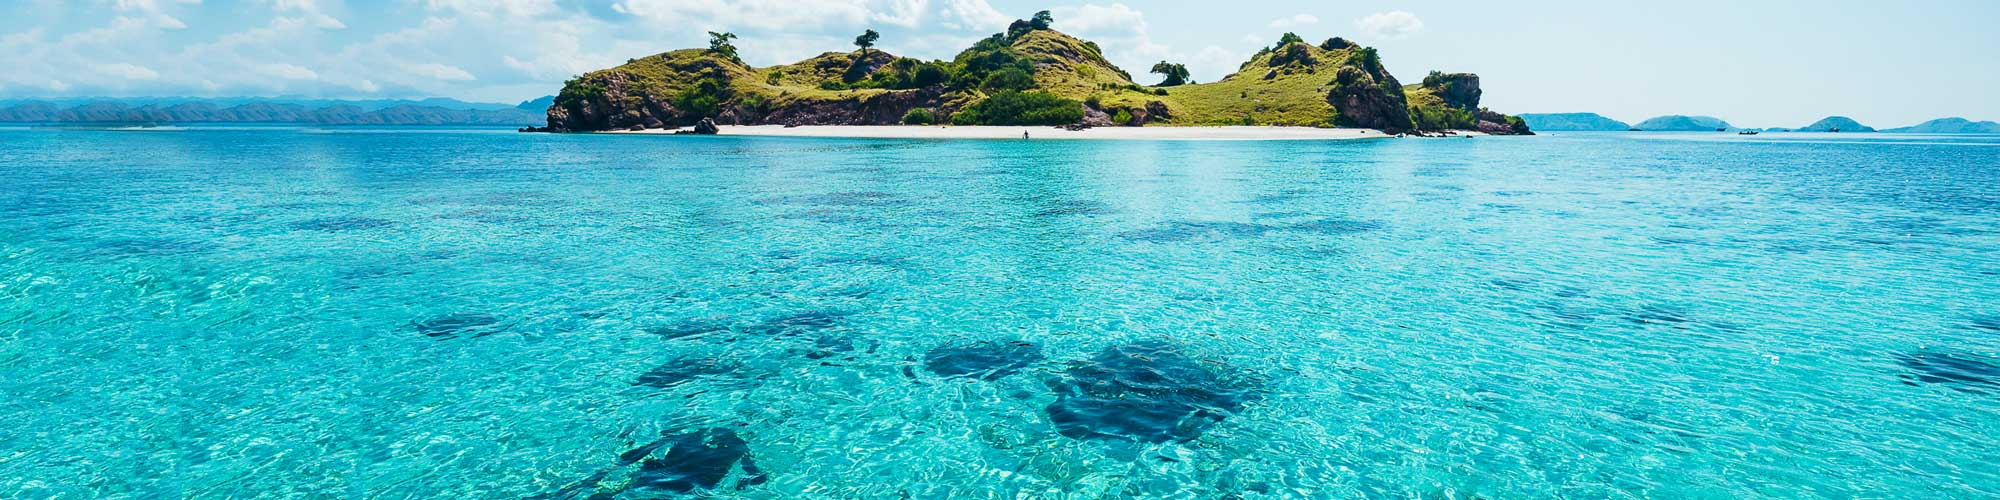 Your Dream Adventure is Waiting – Experience Bali & Komodo Islands with Chandra